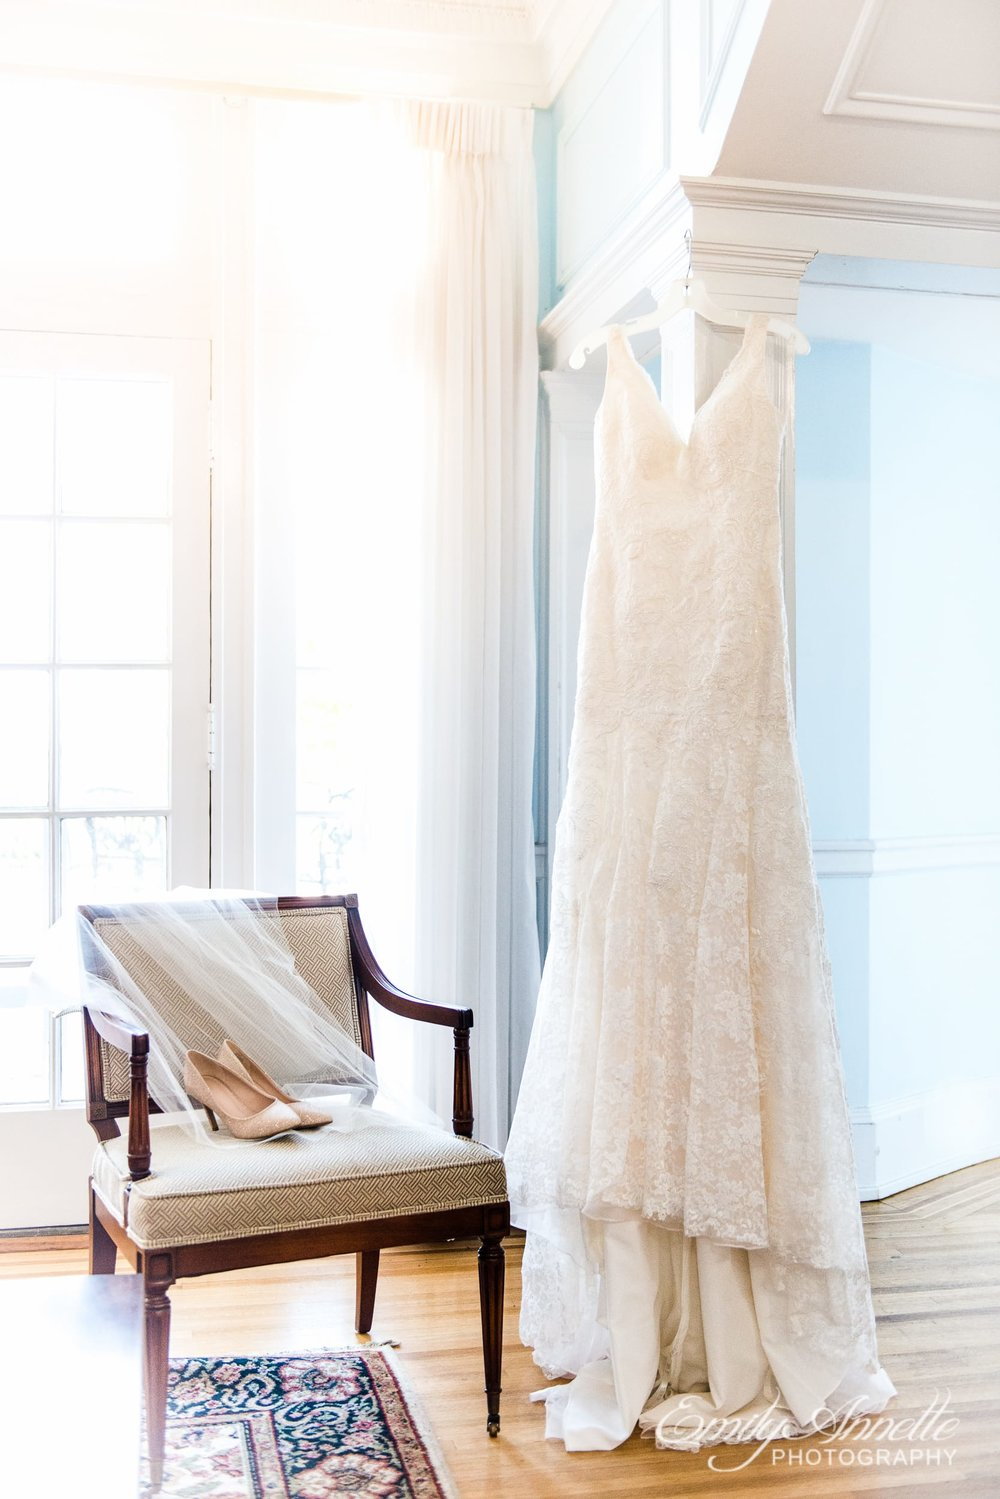 A lace wedding dress hanging next to bridal details in a historic house at Marymount University for a wedding in Arlington, Virginia